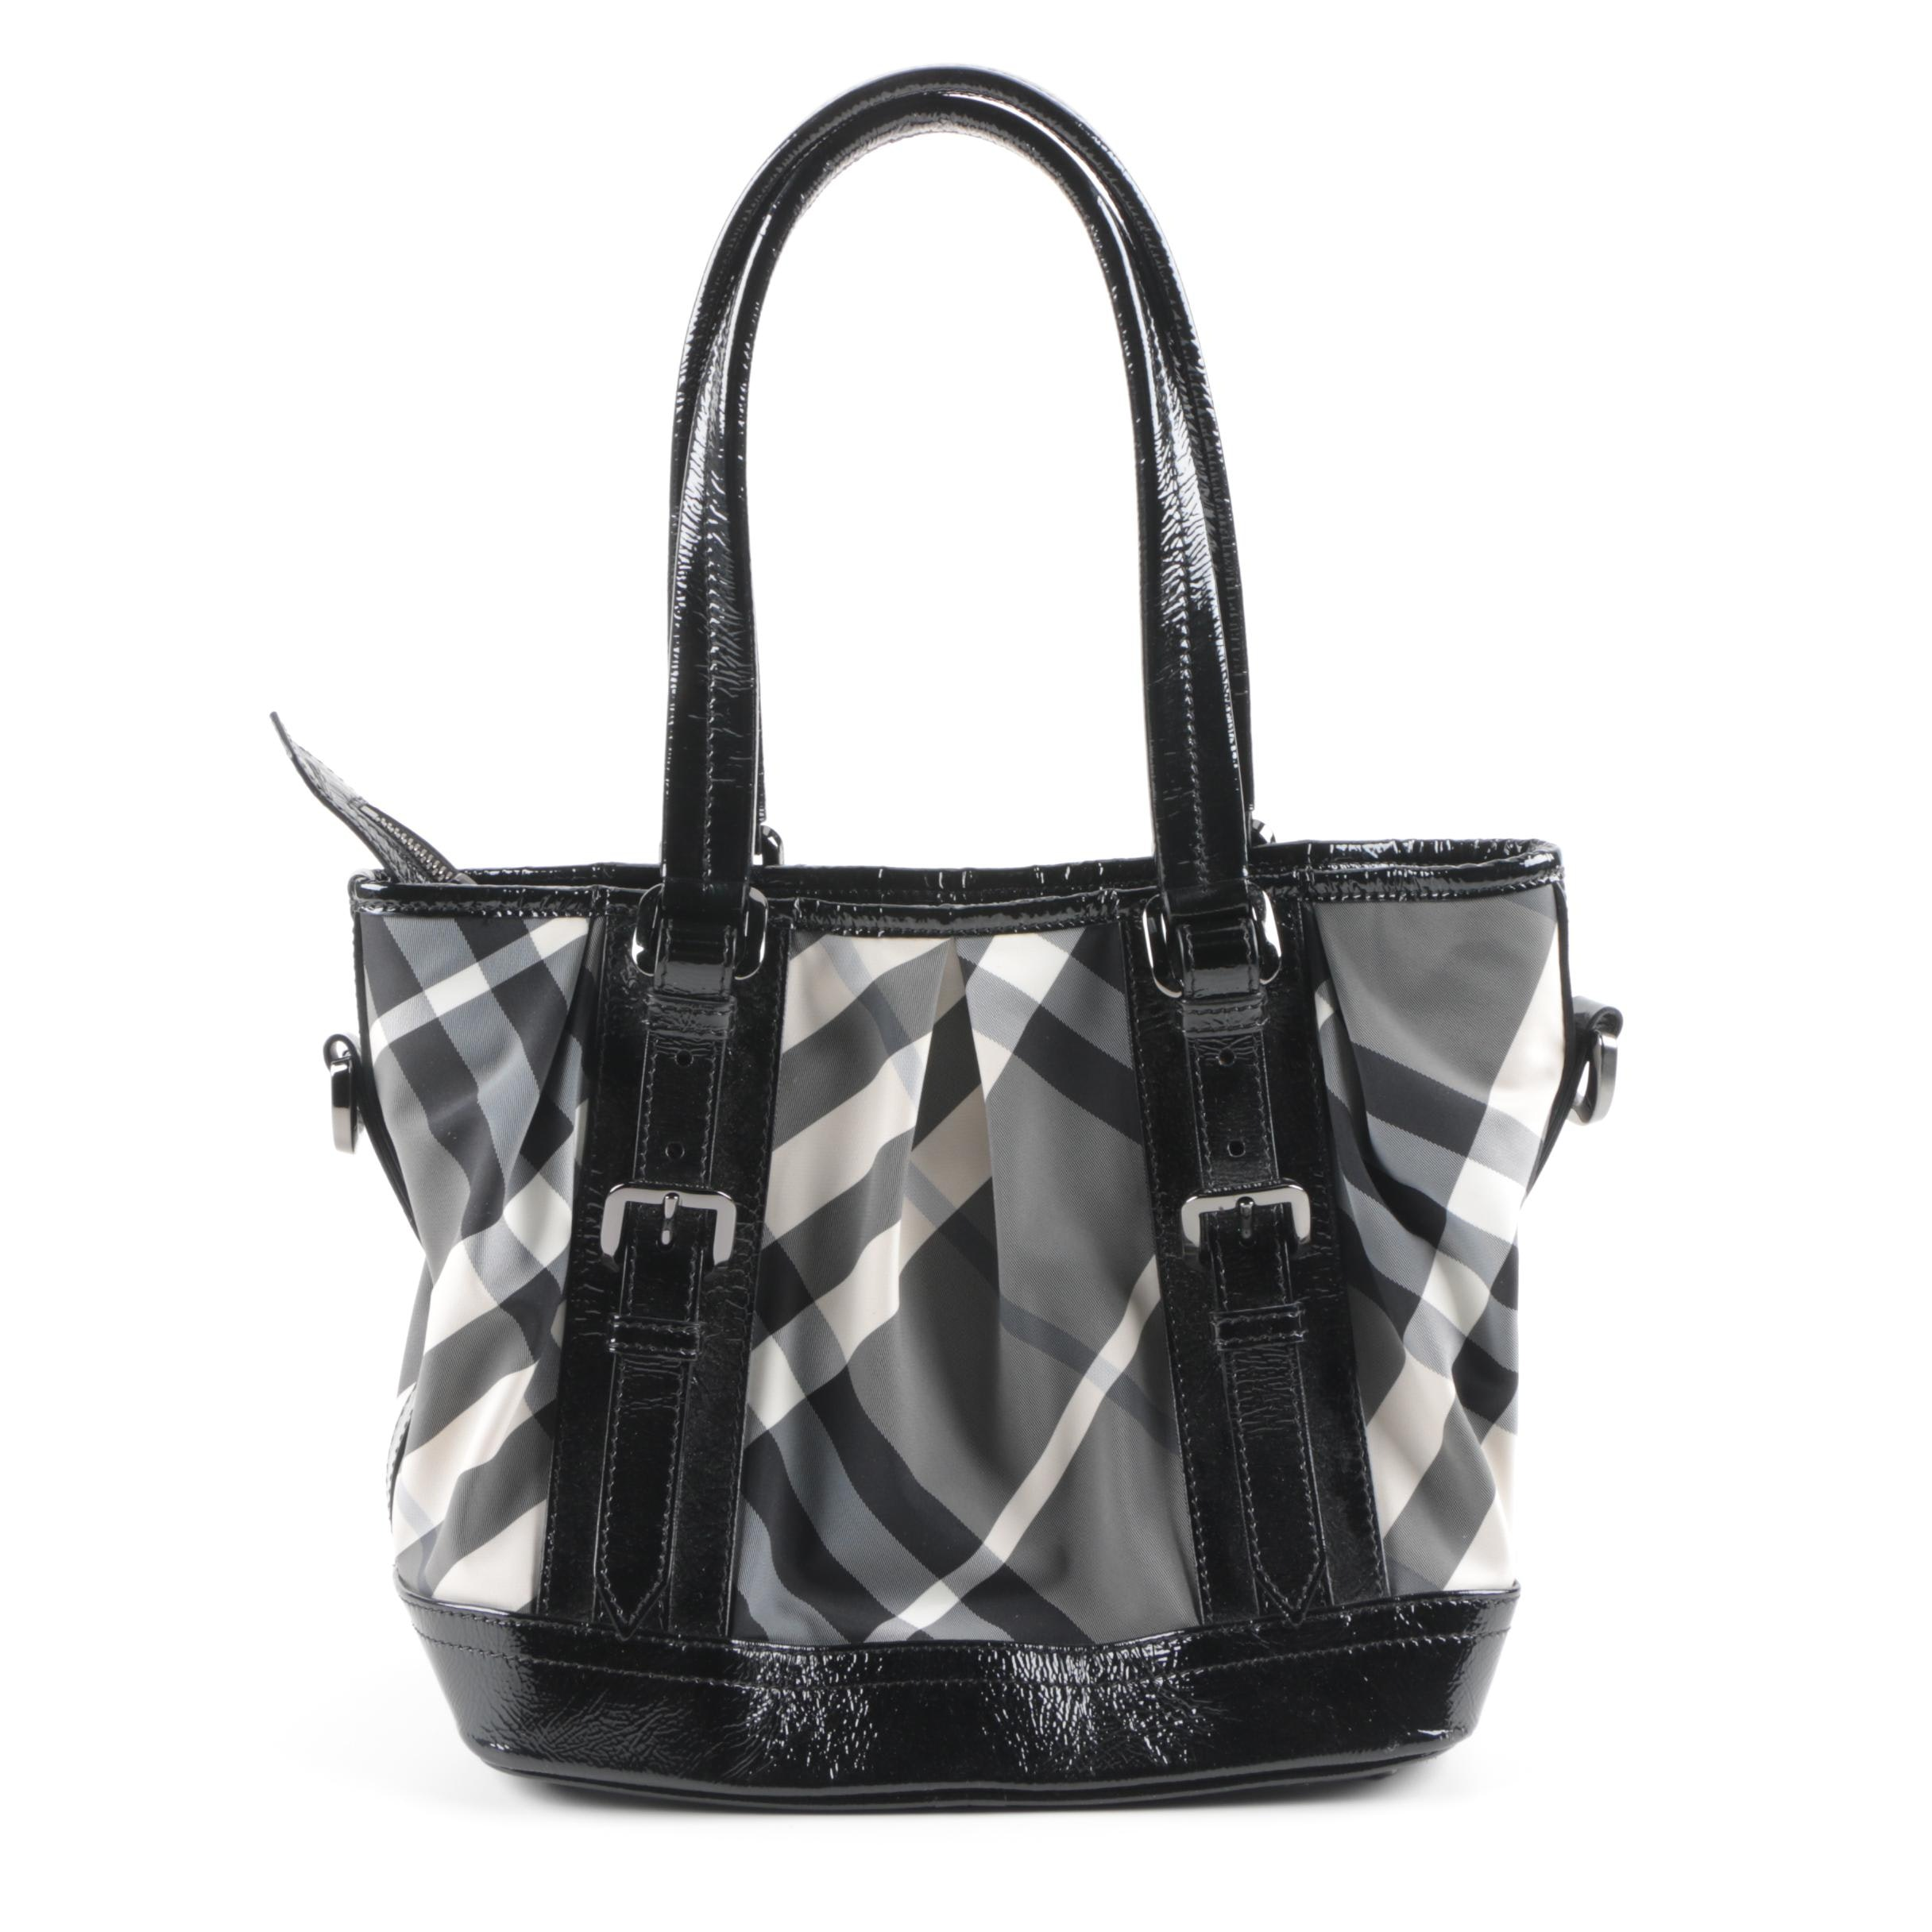 Burberry Lowry Baby Beat Patent Leather and Nylon Tote Bag